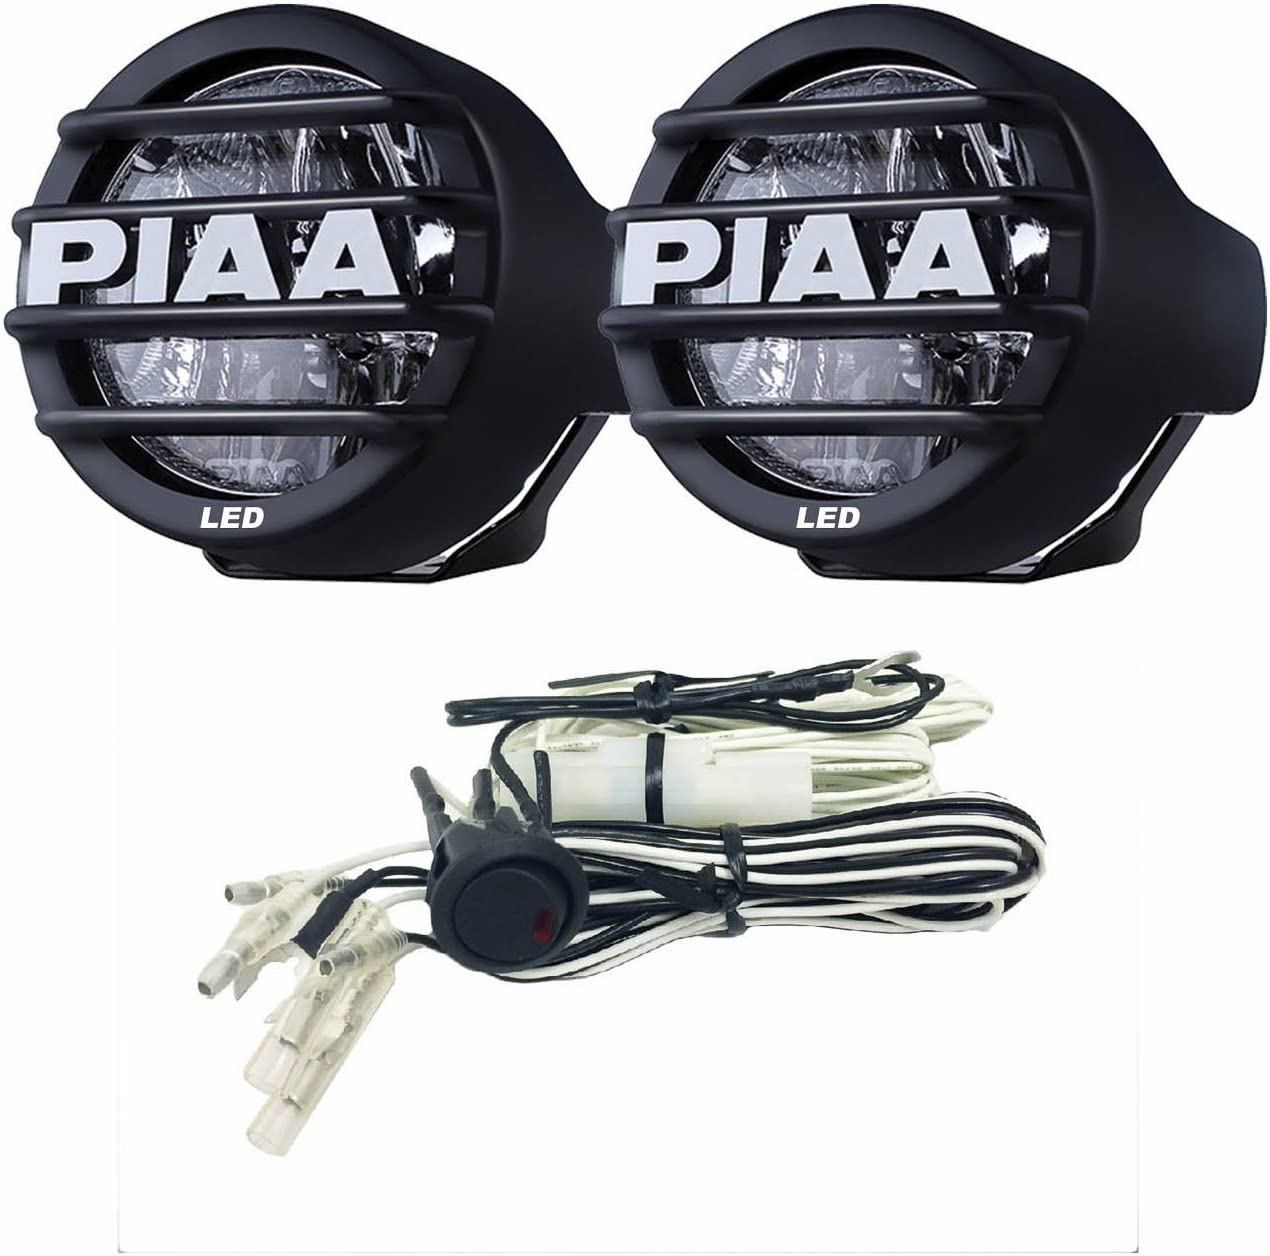 piaa motorcycle lights wiring diagram amazon com piaa 5370 black led fog lamp kit automotive  piaa 5370 black led fog lamp kit